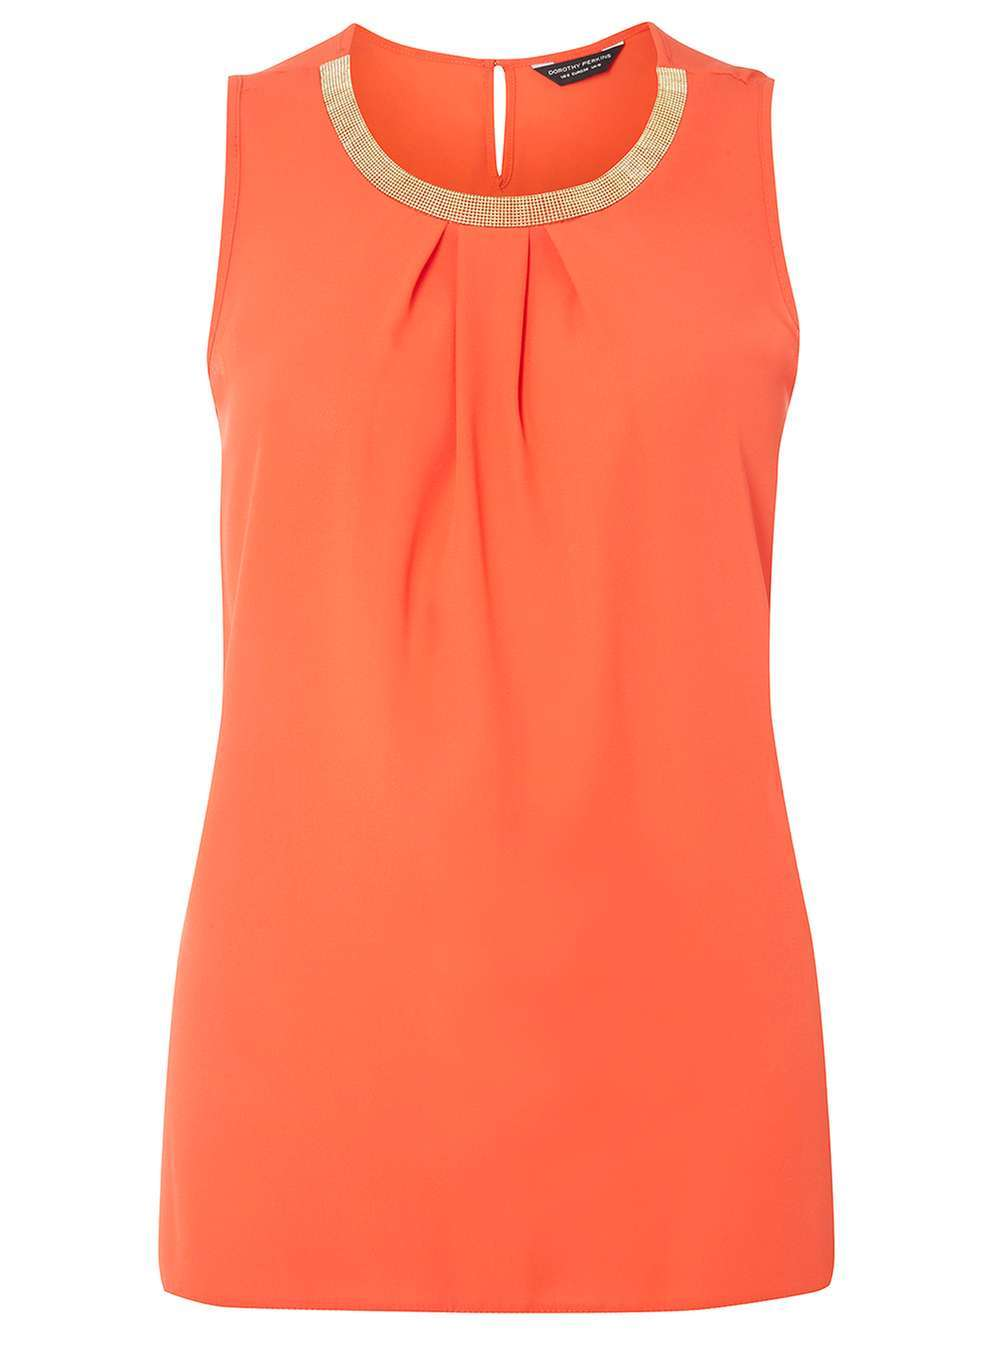 Womens Orange Embellished Top Orange - pattern: plain; sleeve style: sleeveless; predominant colour: bright orange; occasions: casual; length: standard; style: top; fibres: polyester/polyamide - 100%; fit: body skimming; neckline: crew; sleeve length: sleeveless; pattern type: fabric; texture group: jersey - stretchy/drapey; season: a/w 2016; wardrobe: highlight